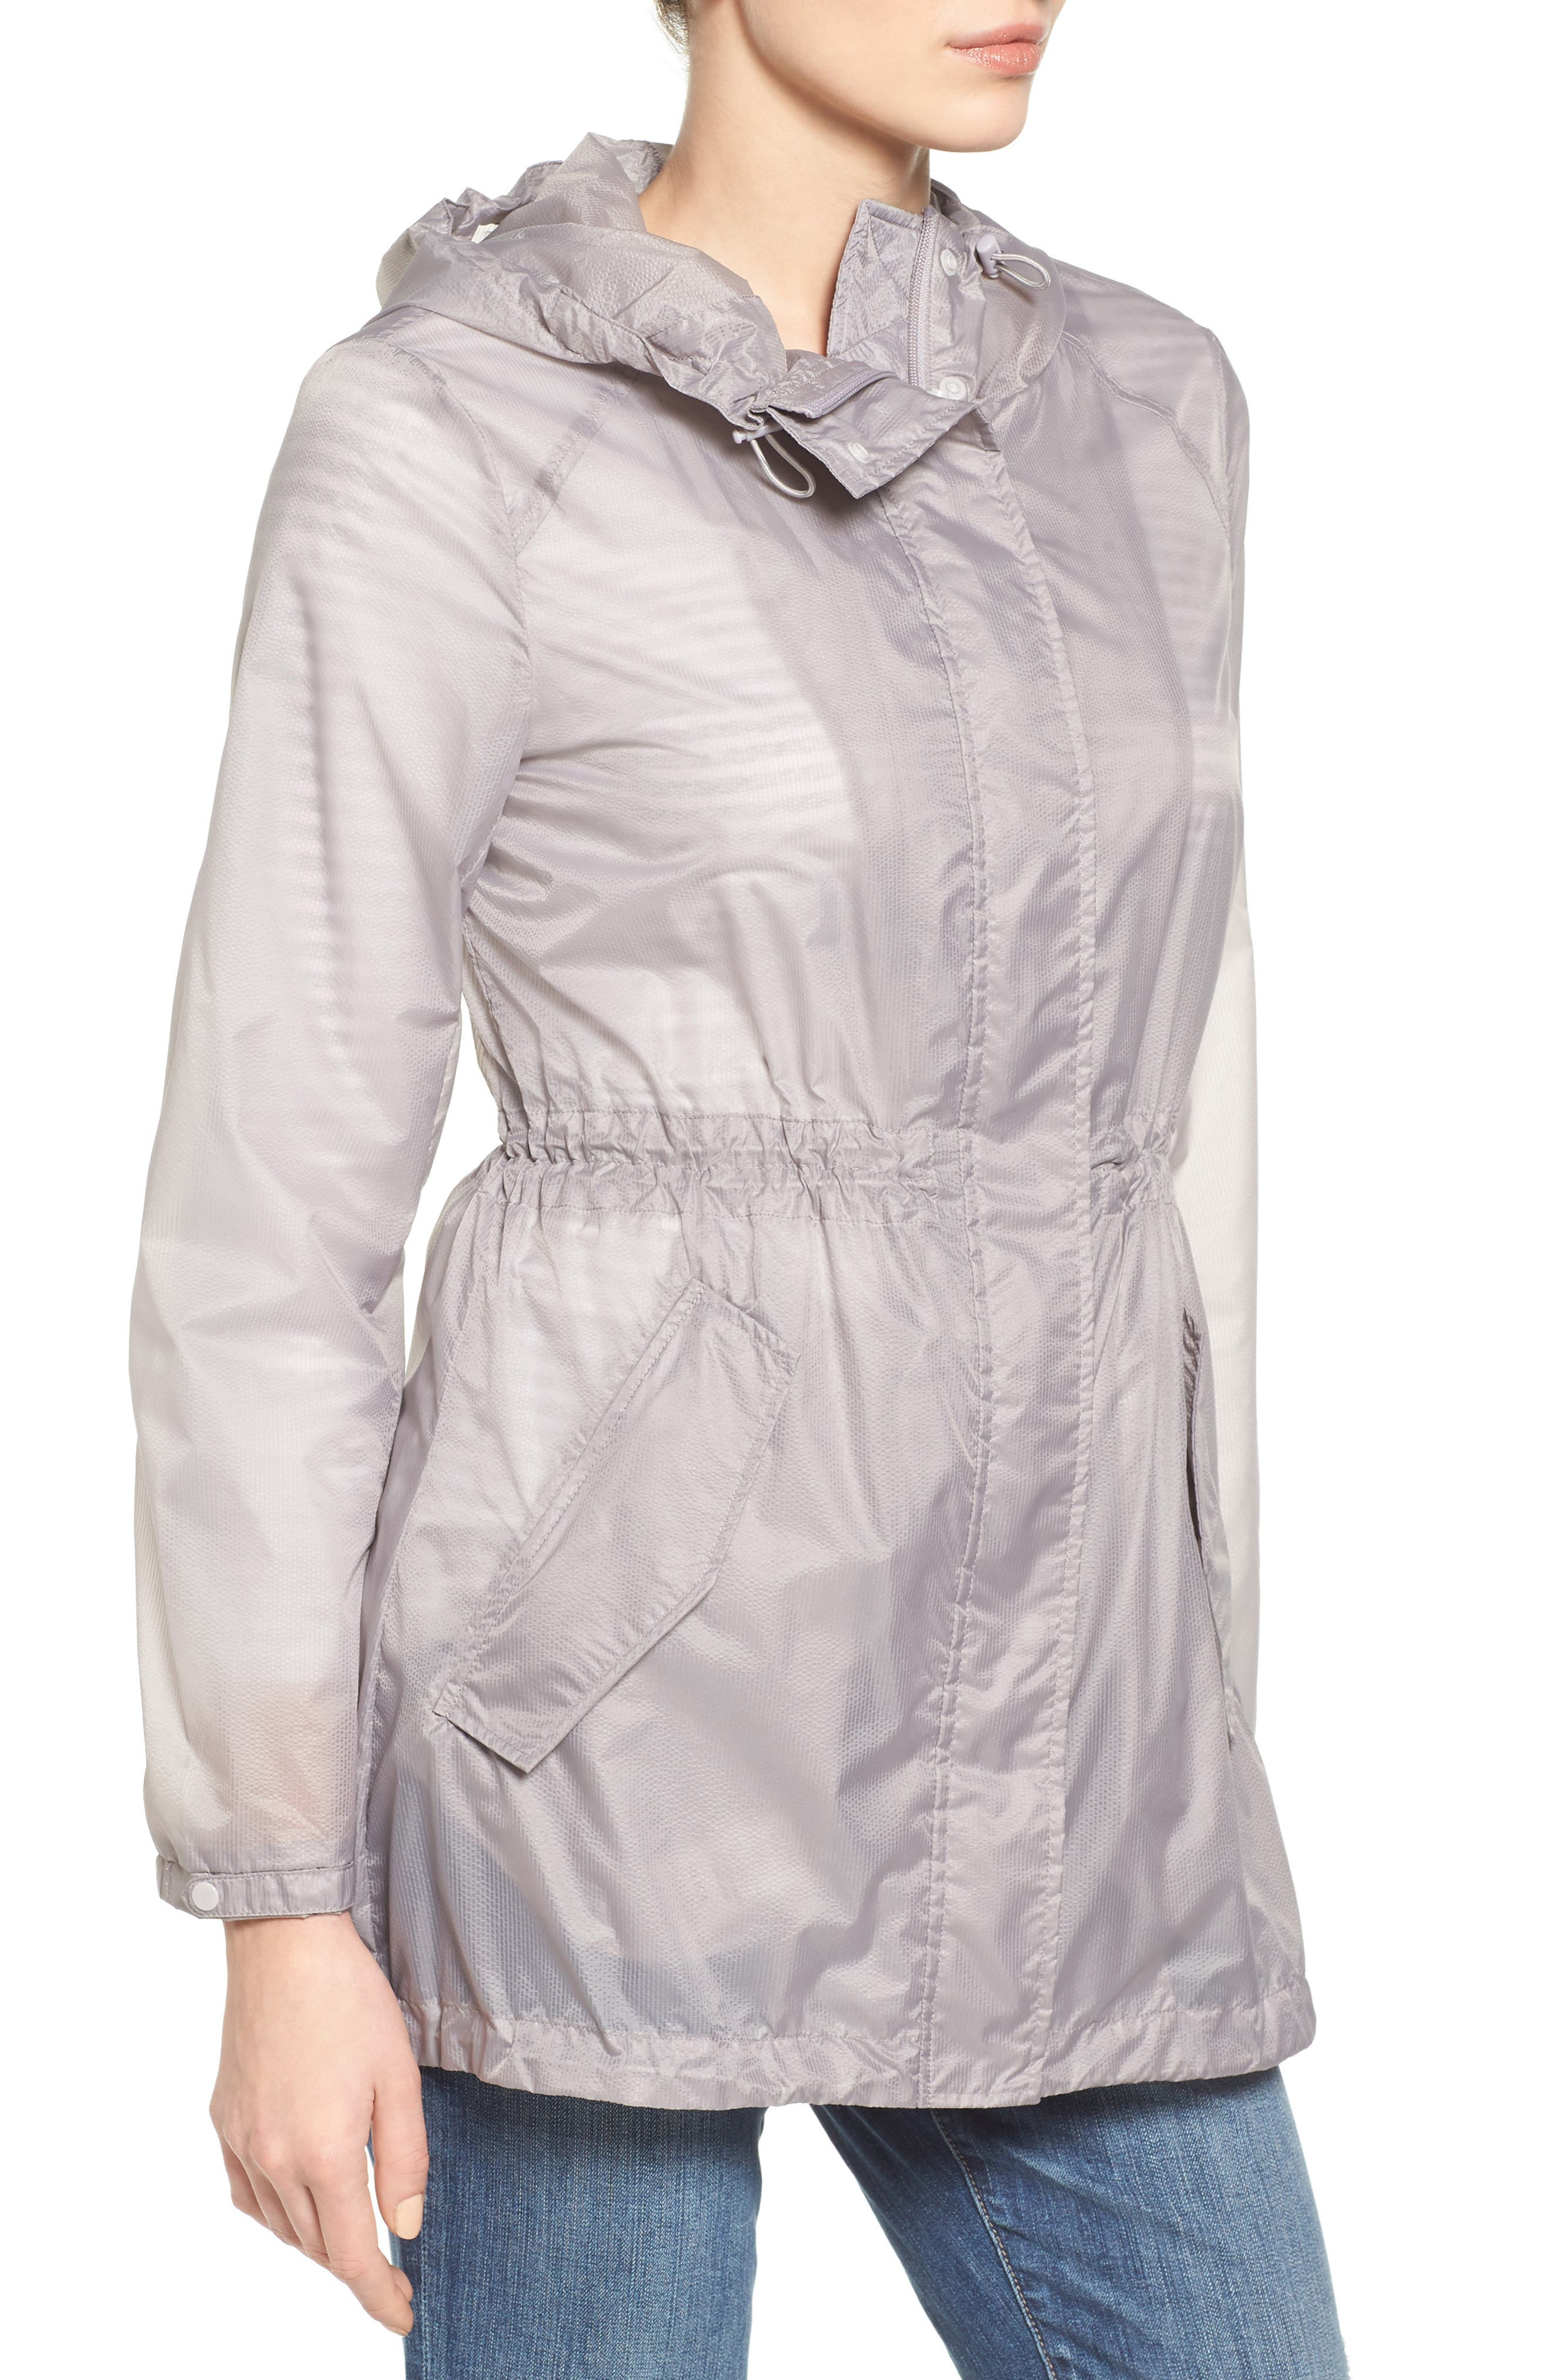 Teri Translucent Rain Jacket,                             Alternate thumbnail 3, color,                             068